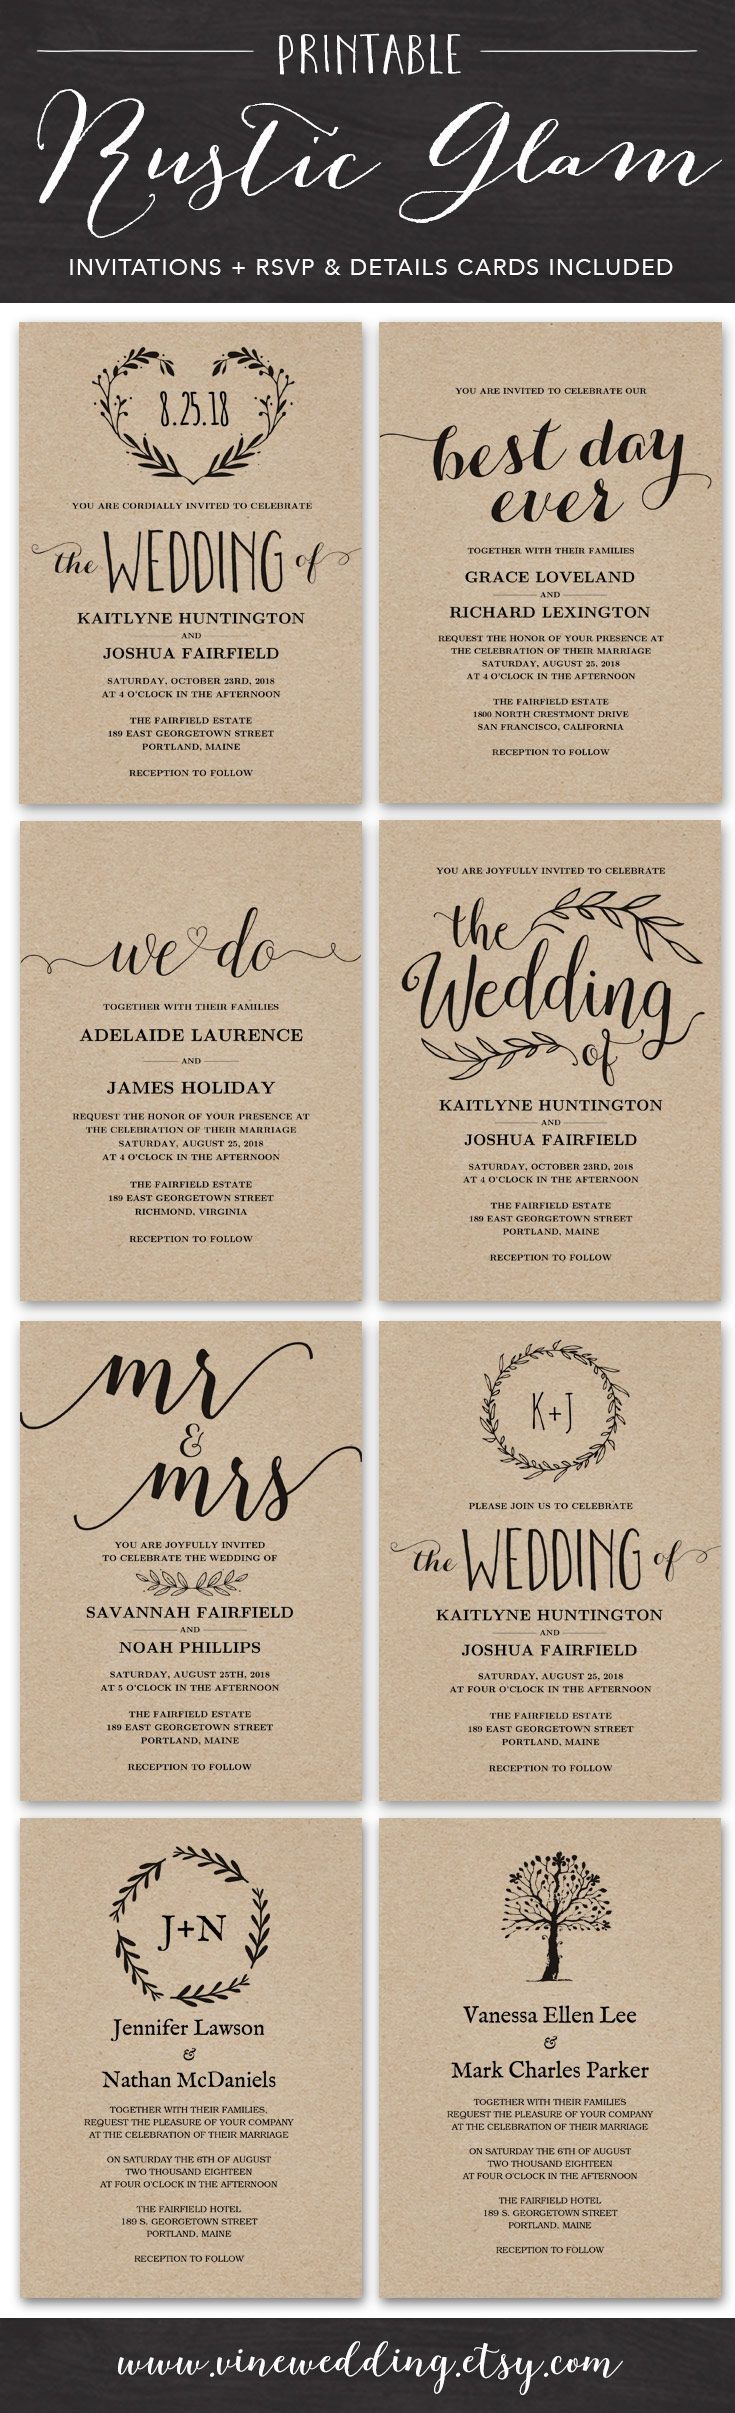 sample of wedding invitation letter%0A Vintage Wedding Invitation  Rustic Wedding invitation Set  Printable Wedding  Invitation  Kraft Wedding Invitation Set  Editable Text  VW     Diy wedding